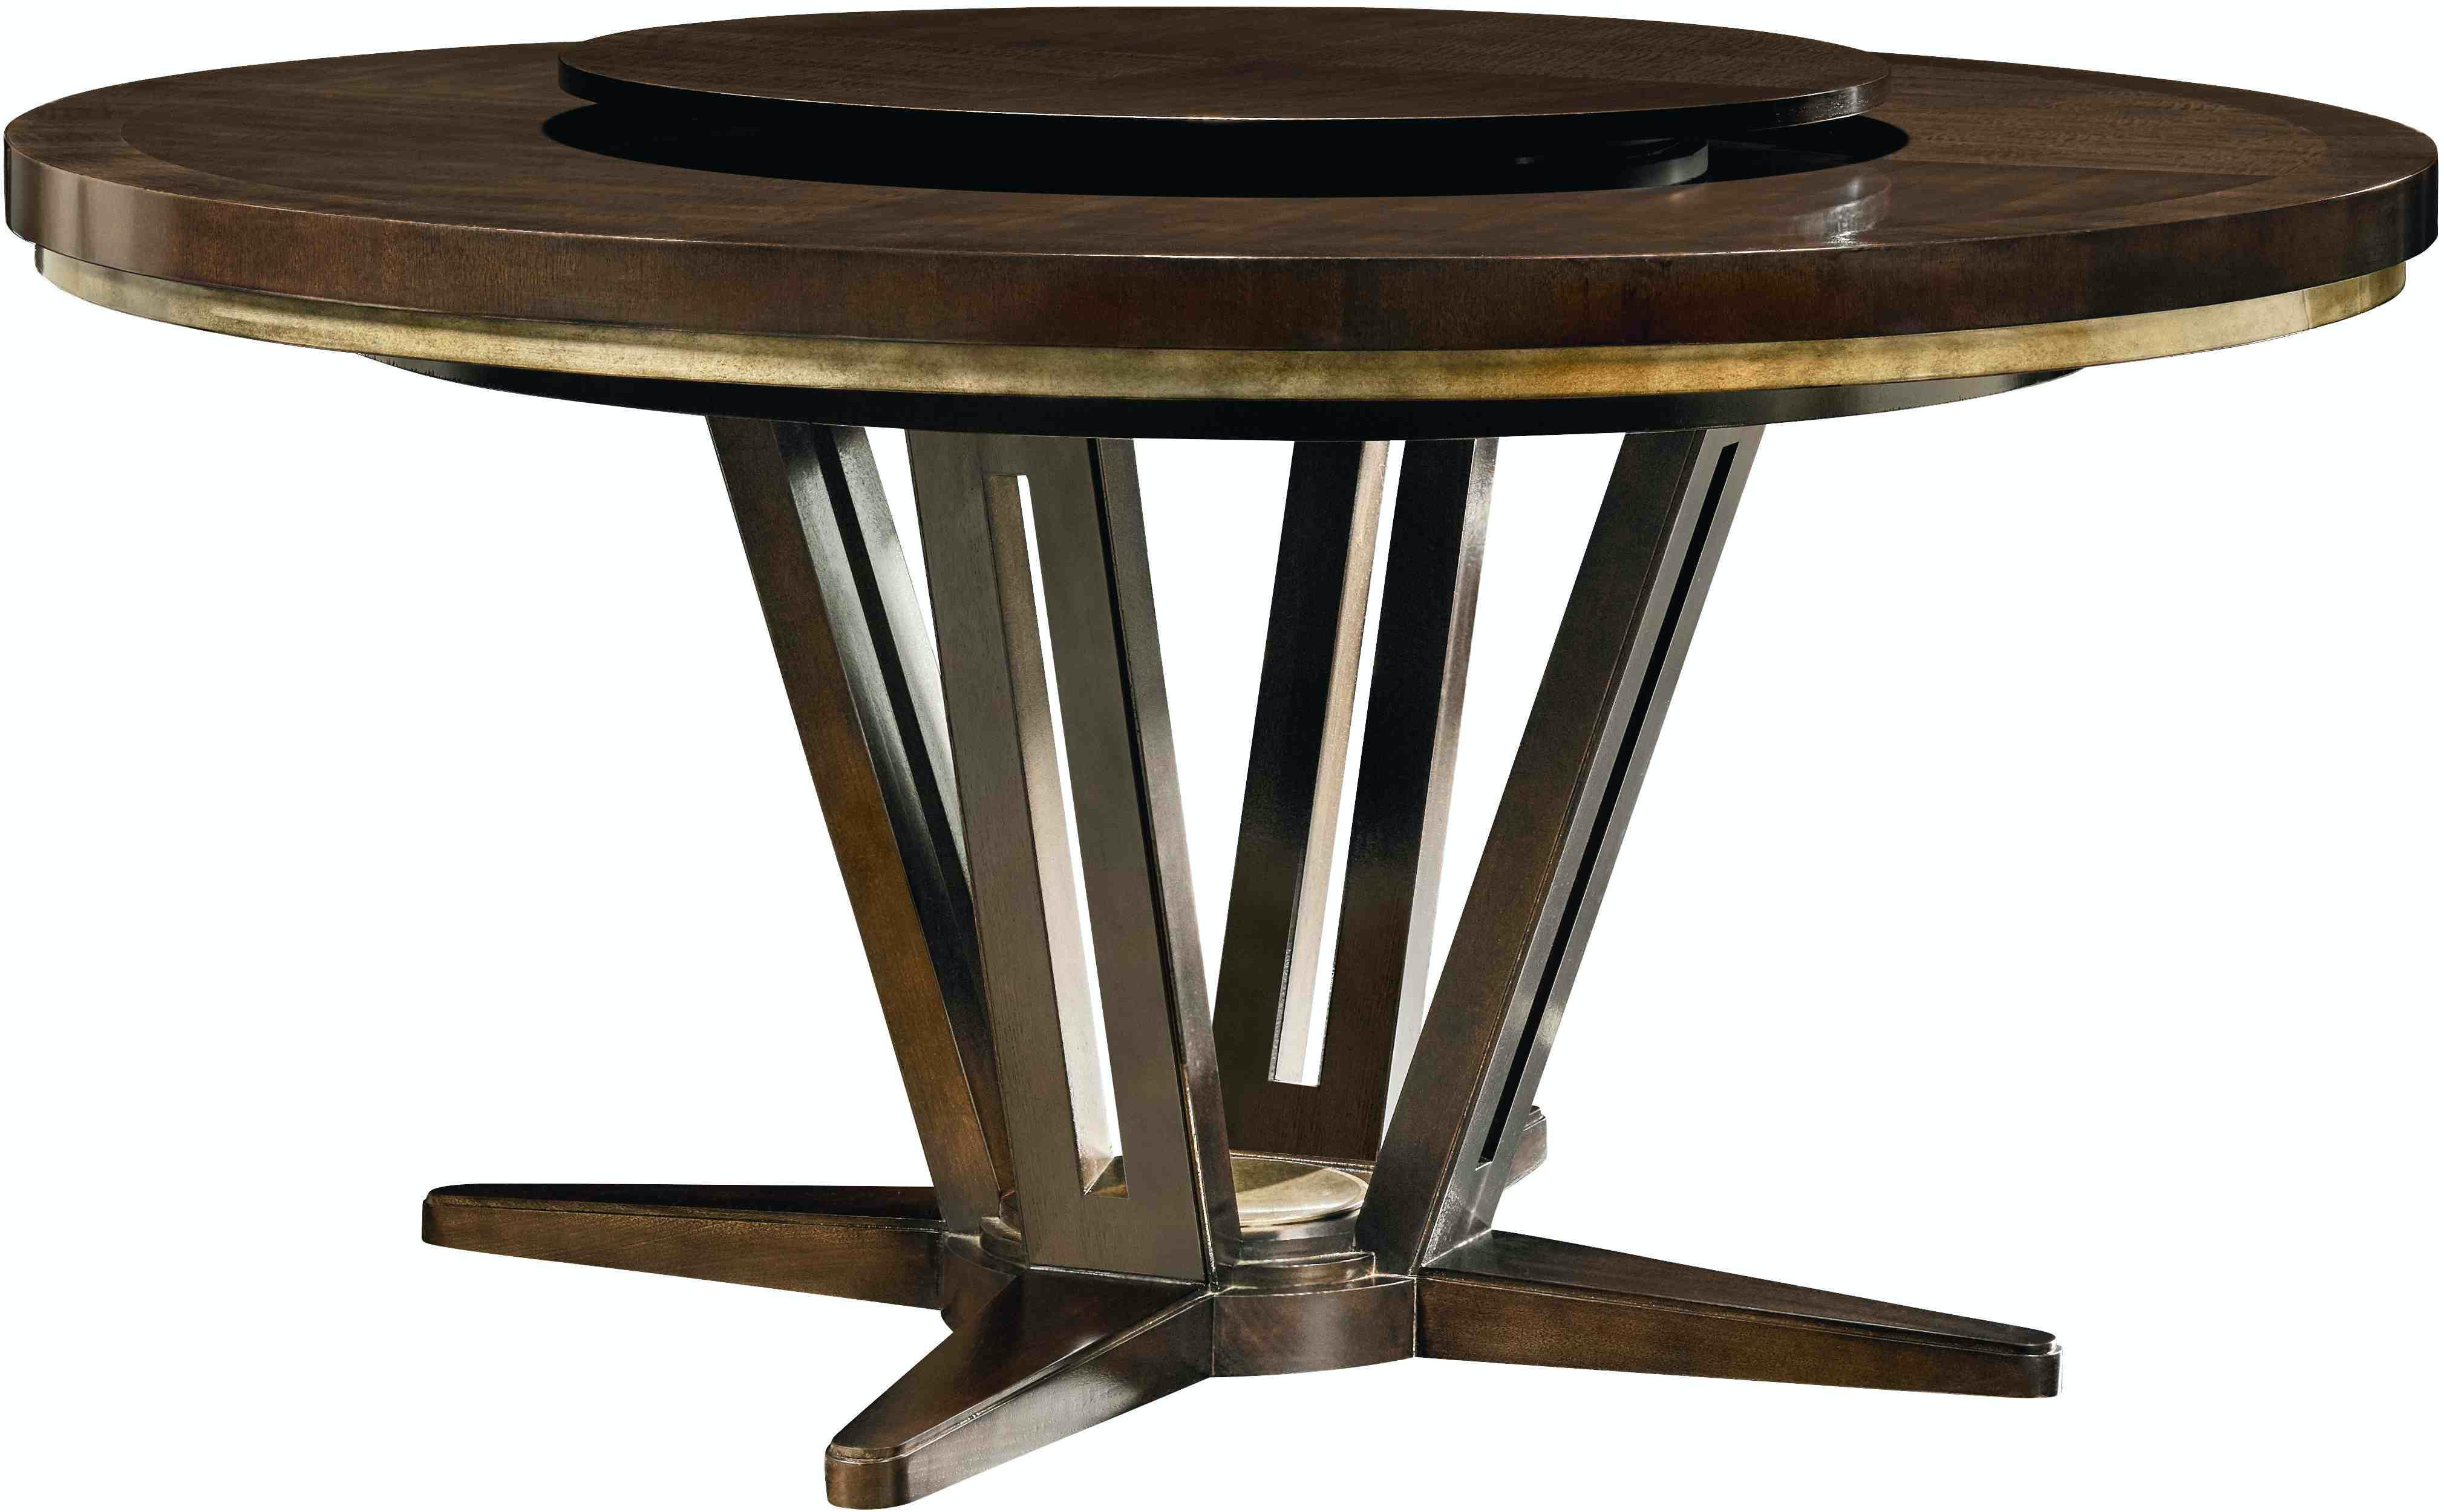 Fine Furniture Design Dining Room Le Cercle Round Dining